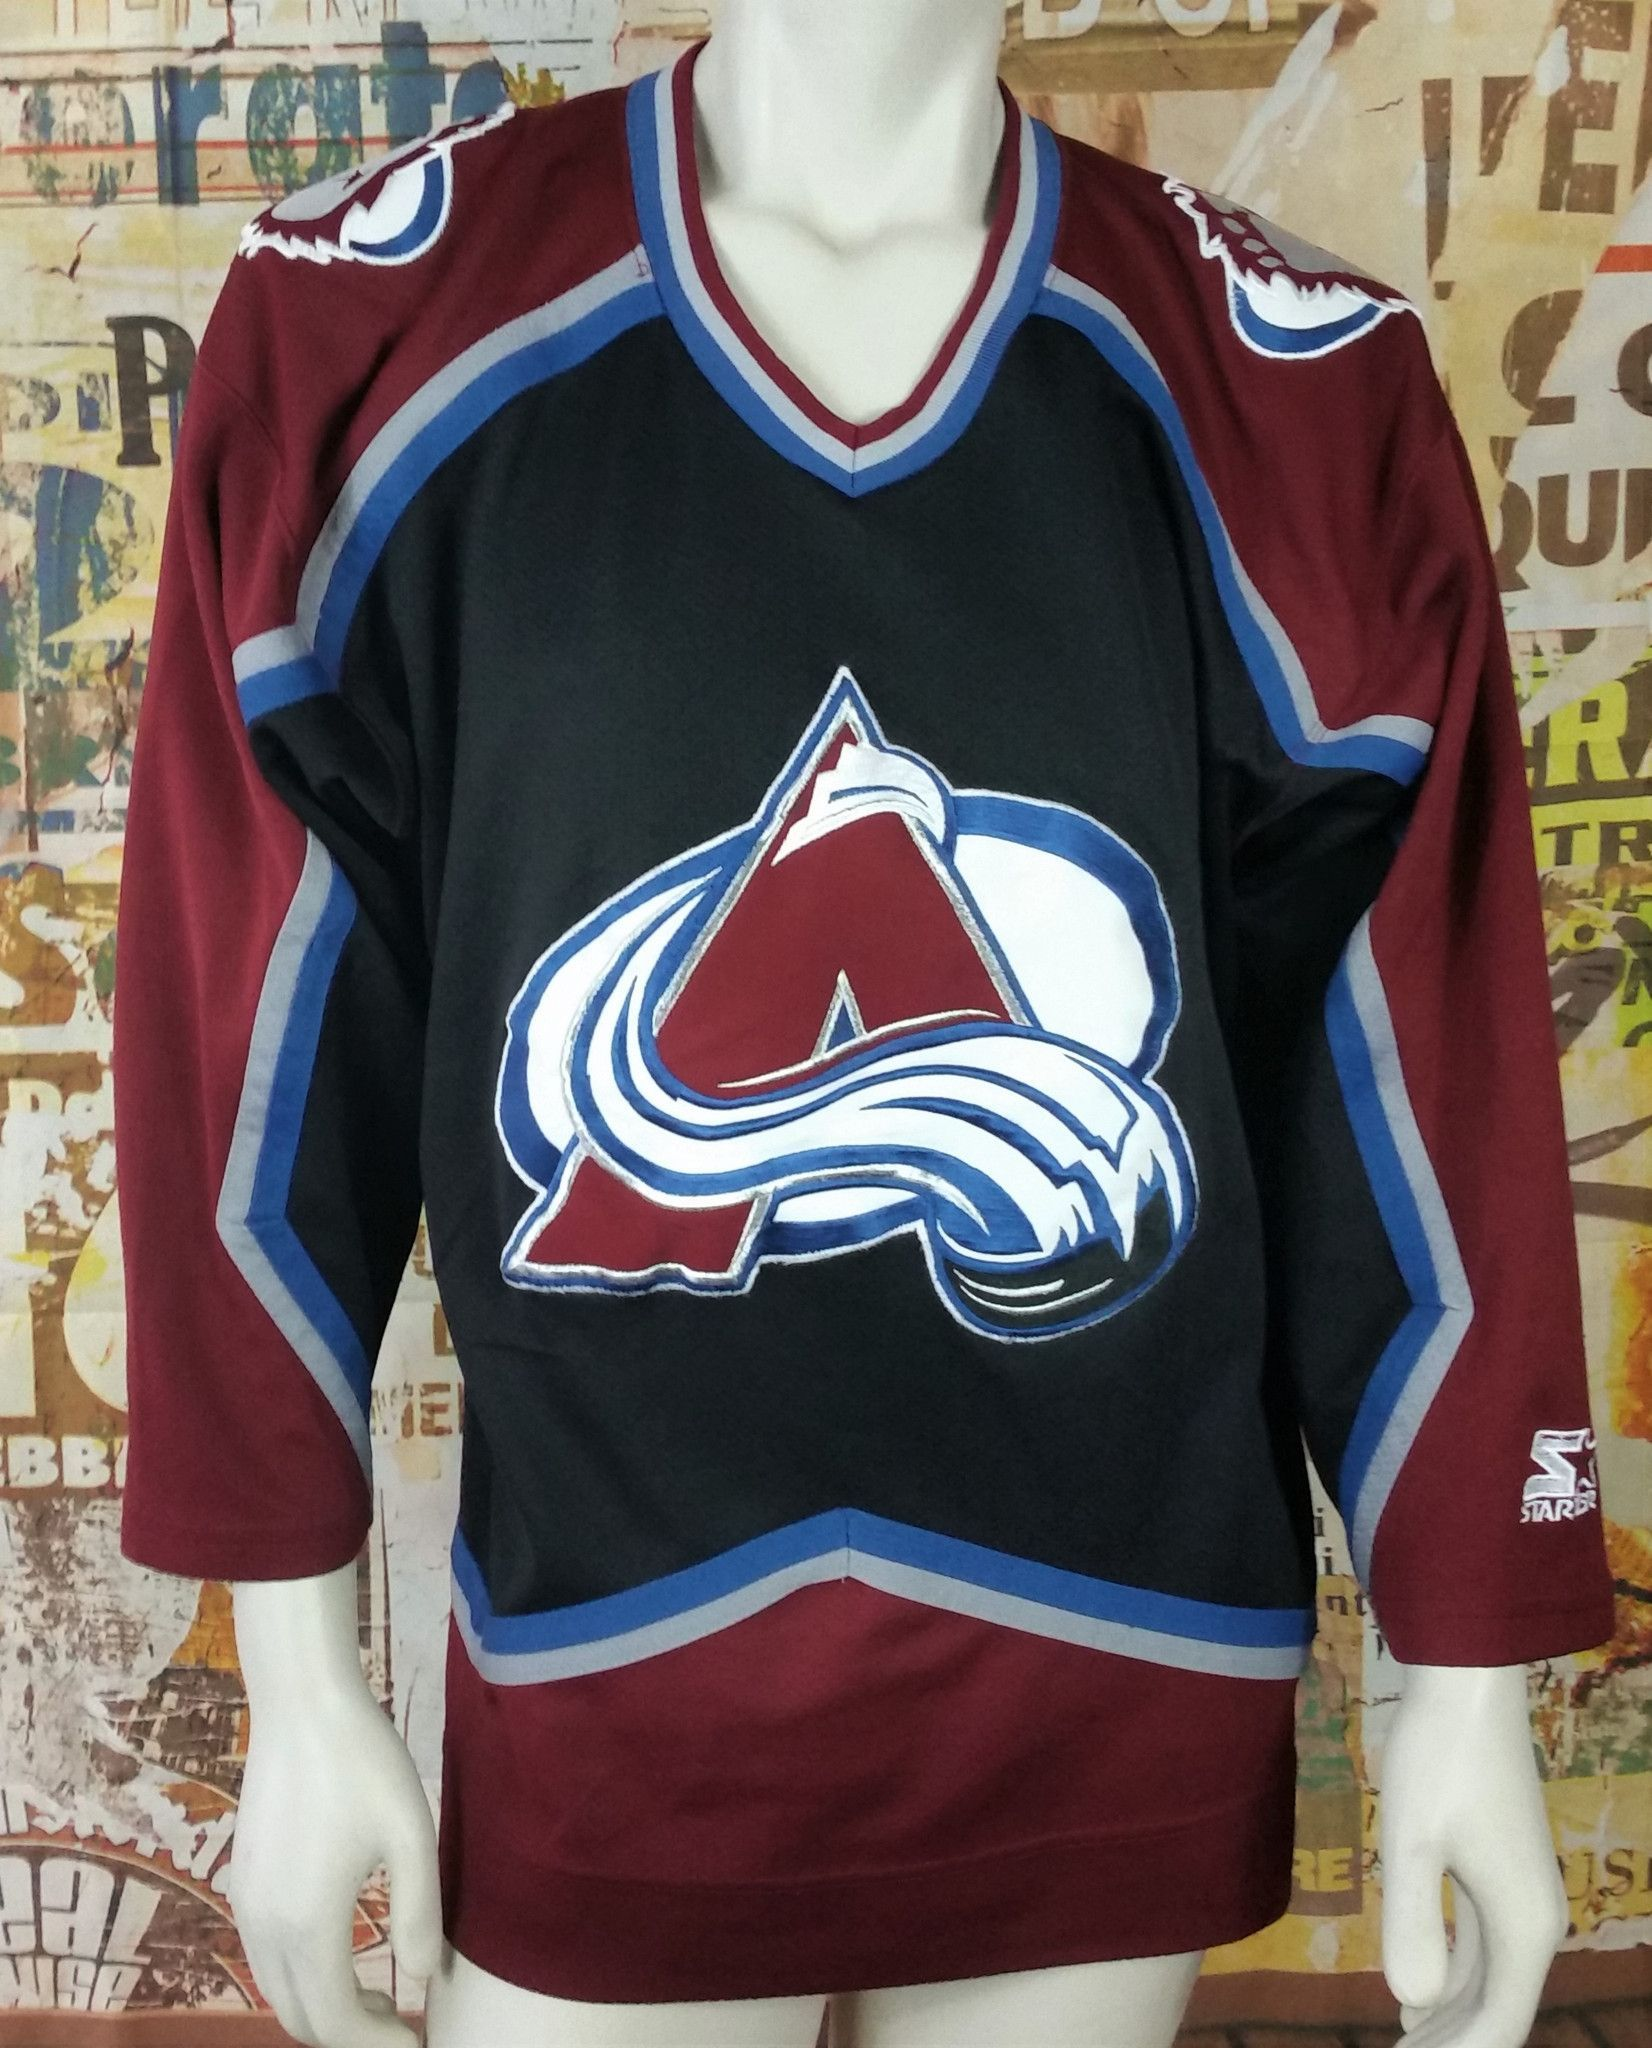 wholesale dealer 3d828 10b94 discount code for colorado avalanche old jersey 83e74 ab8fc